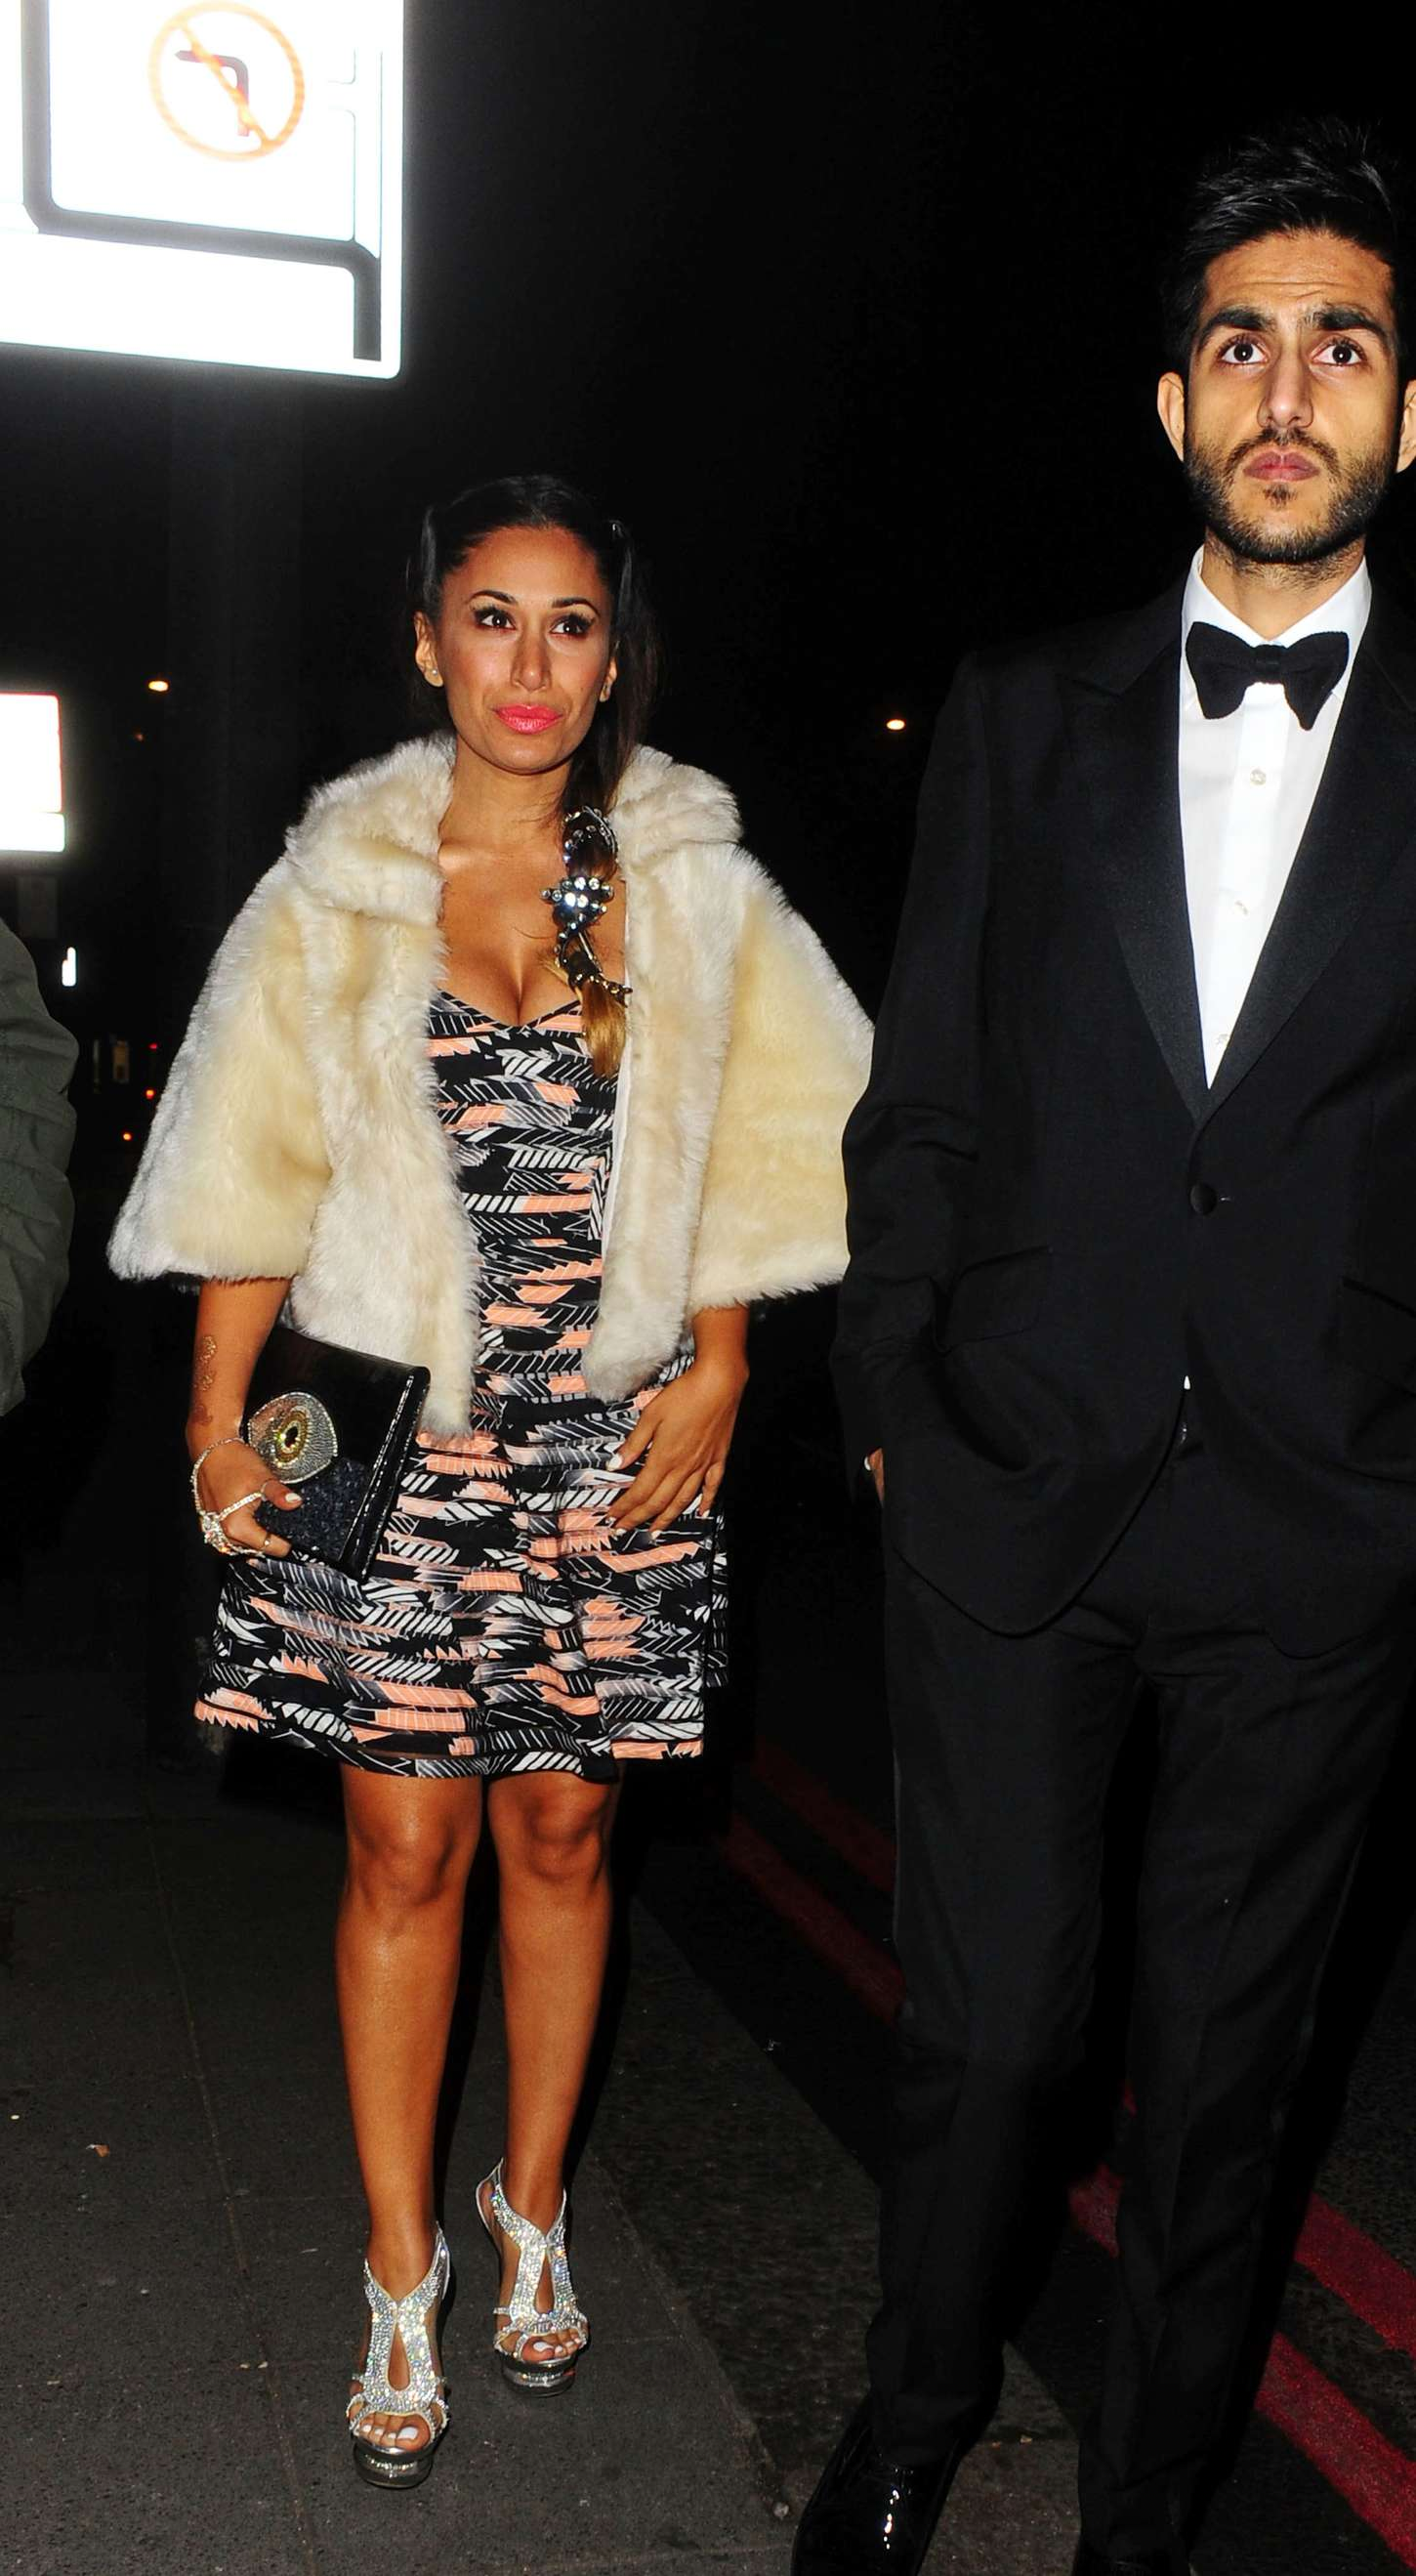 Preeya Kalidas Leaving The BAFTAs in London